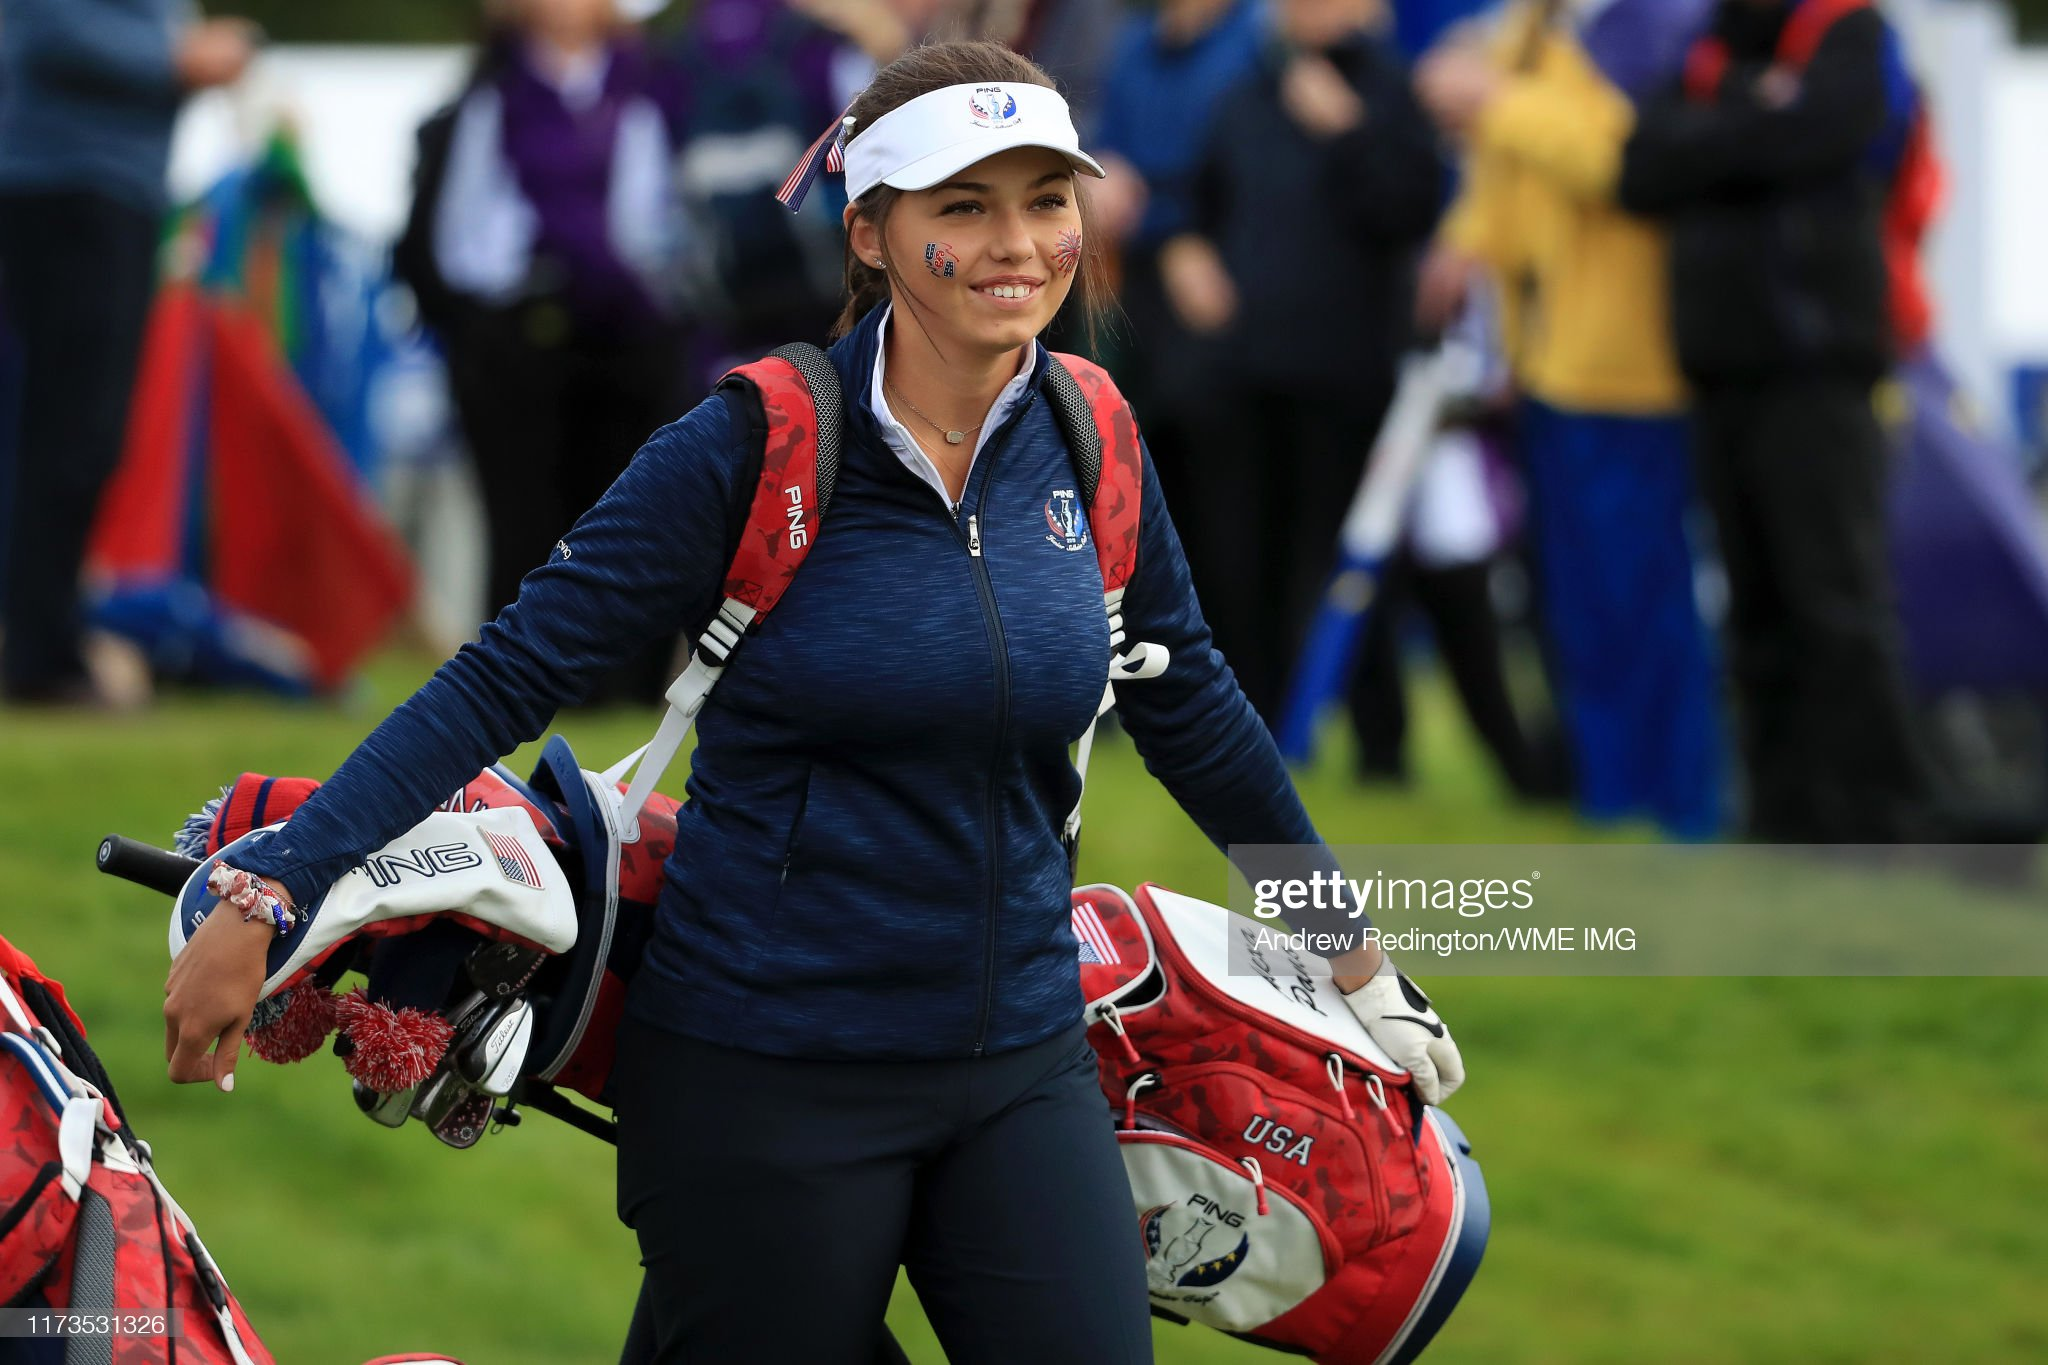 https://media.gettyimages.com/photos/alexa-pano-of-team-usa-walks-off-the-1st-tee-during-the-ping-junior-picture-id1173531326?s=2048x2048